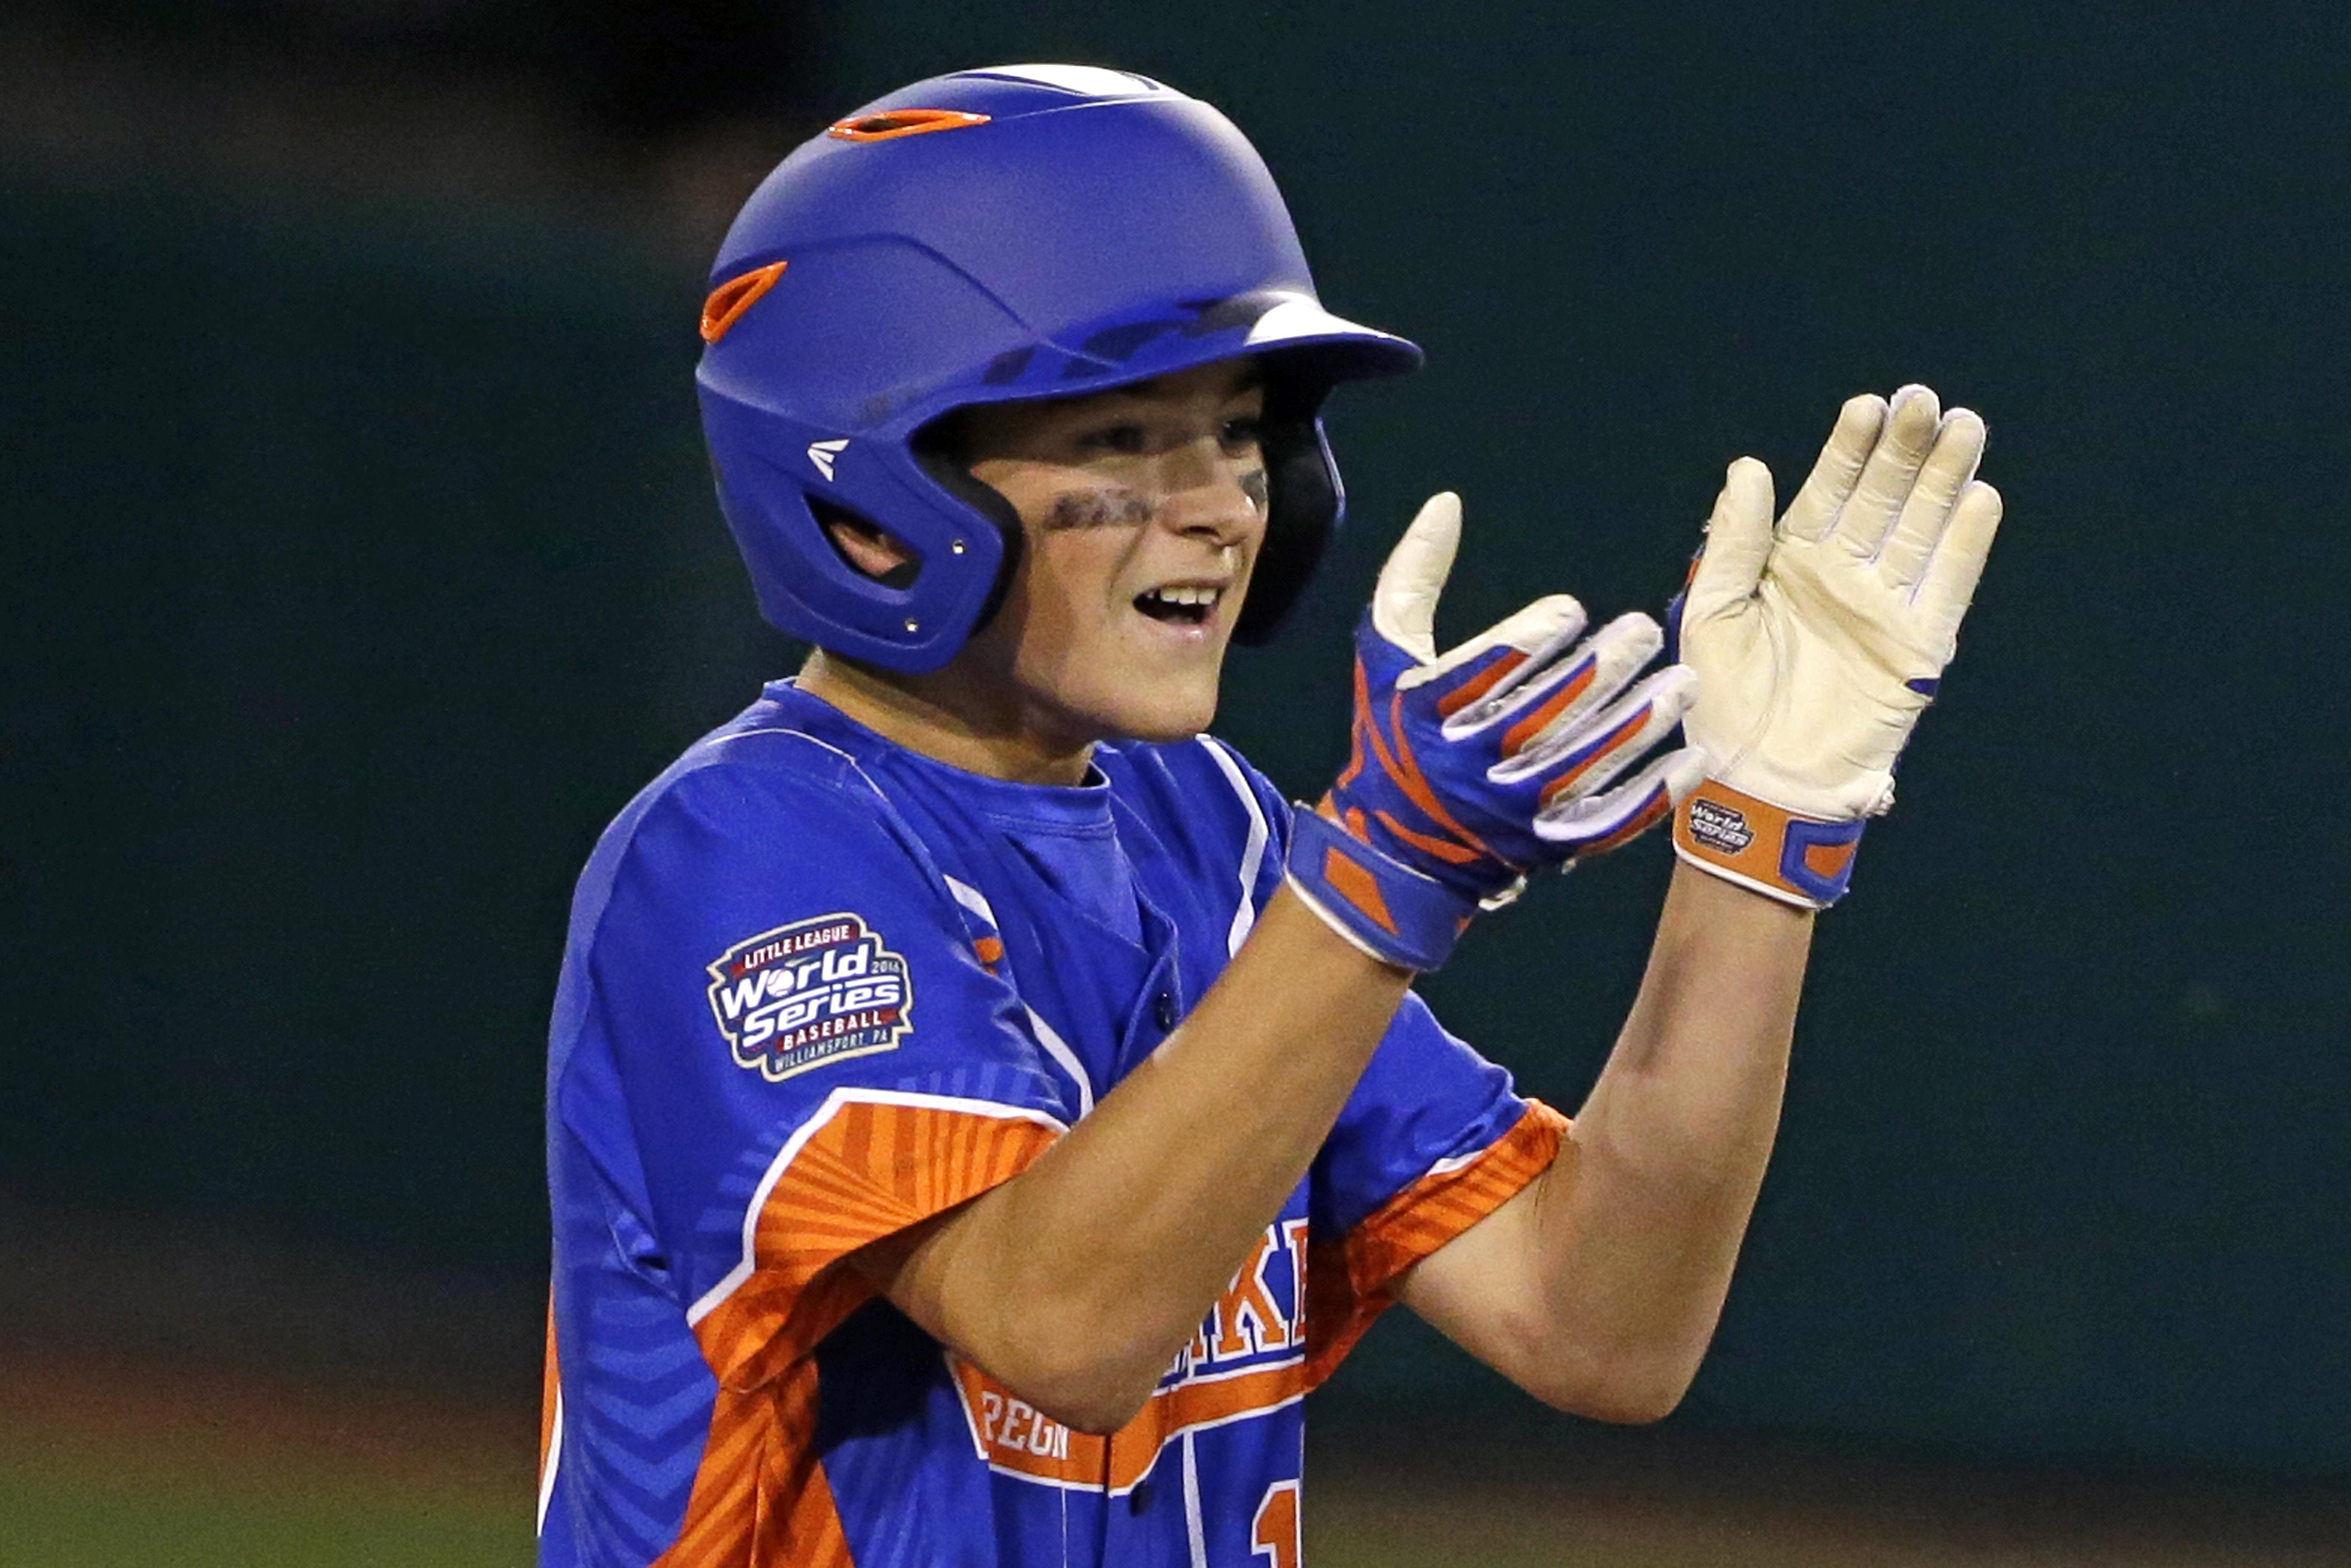 Llws_kentucky_iowa_baseball